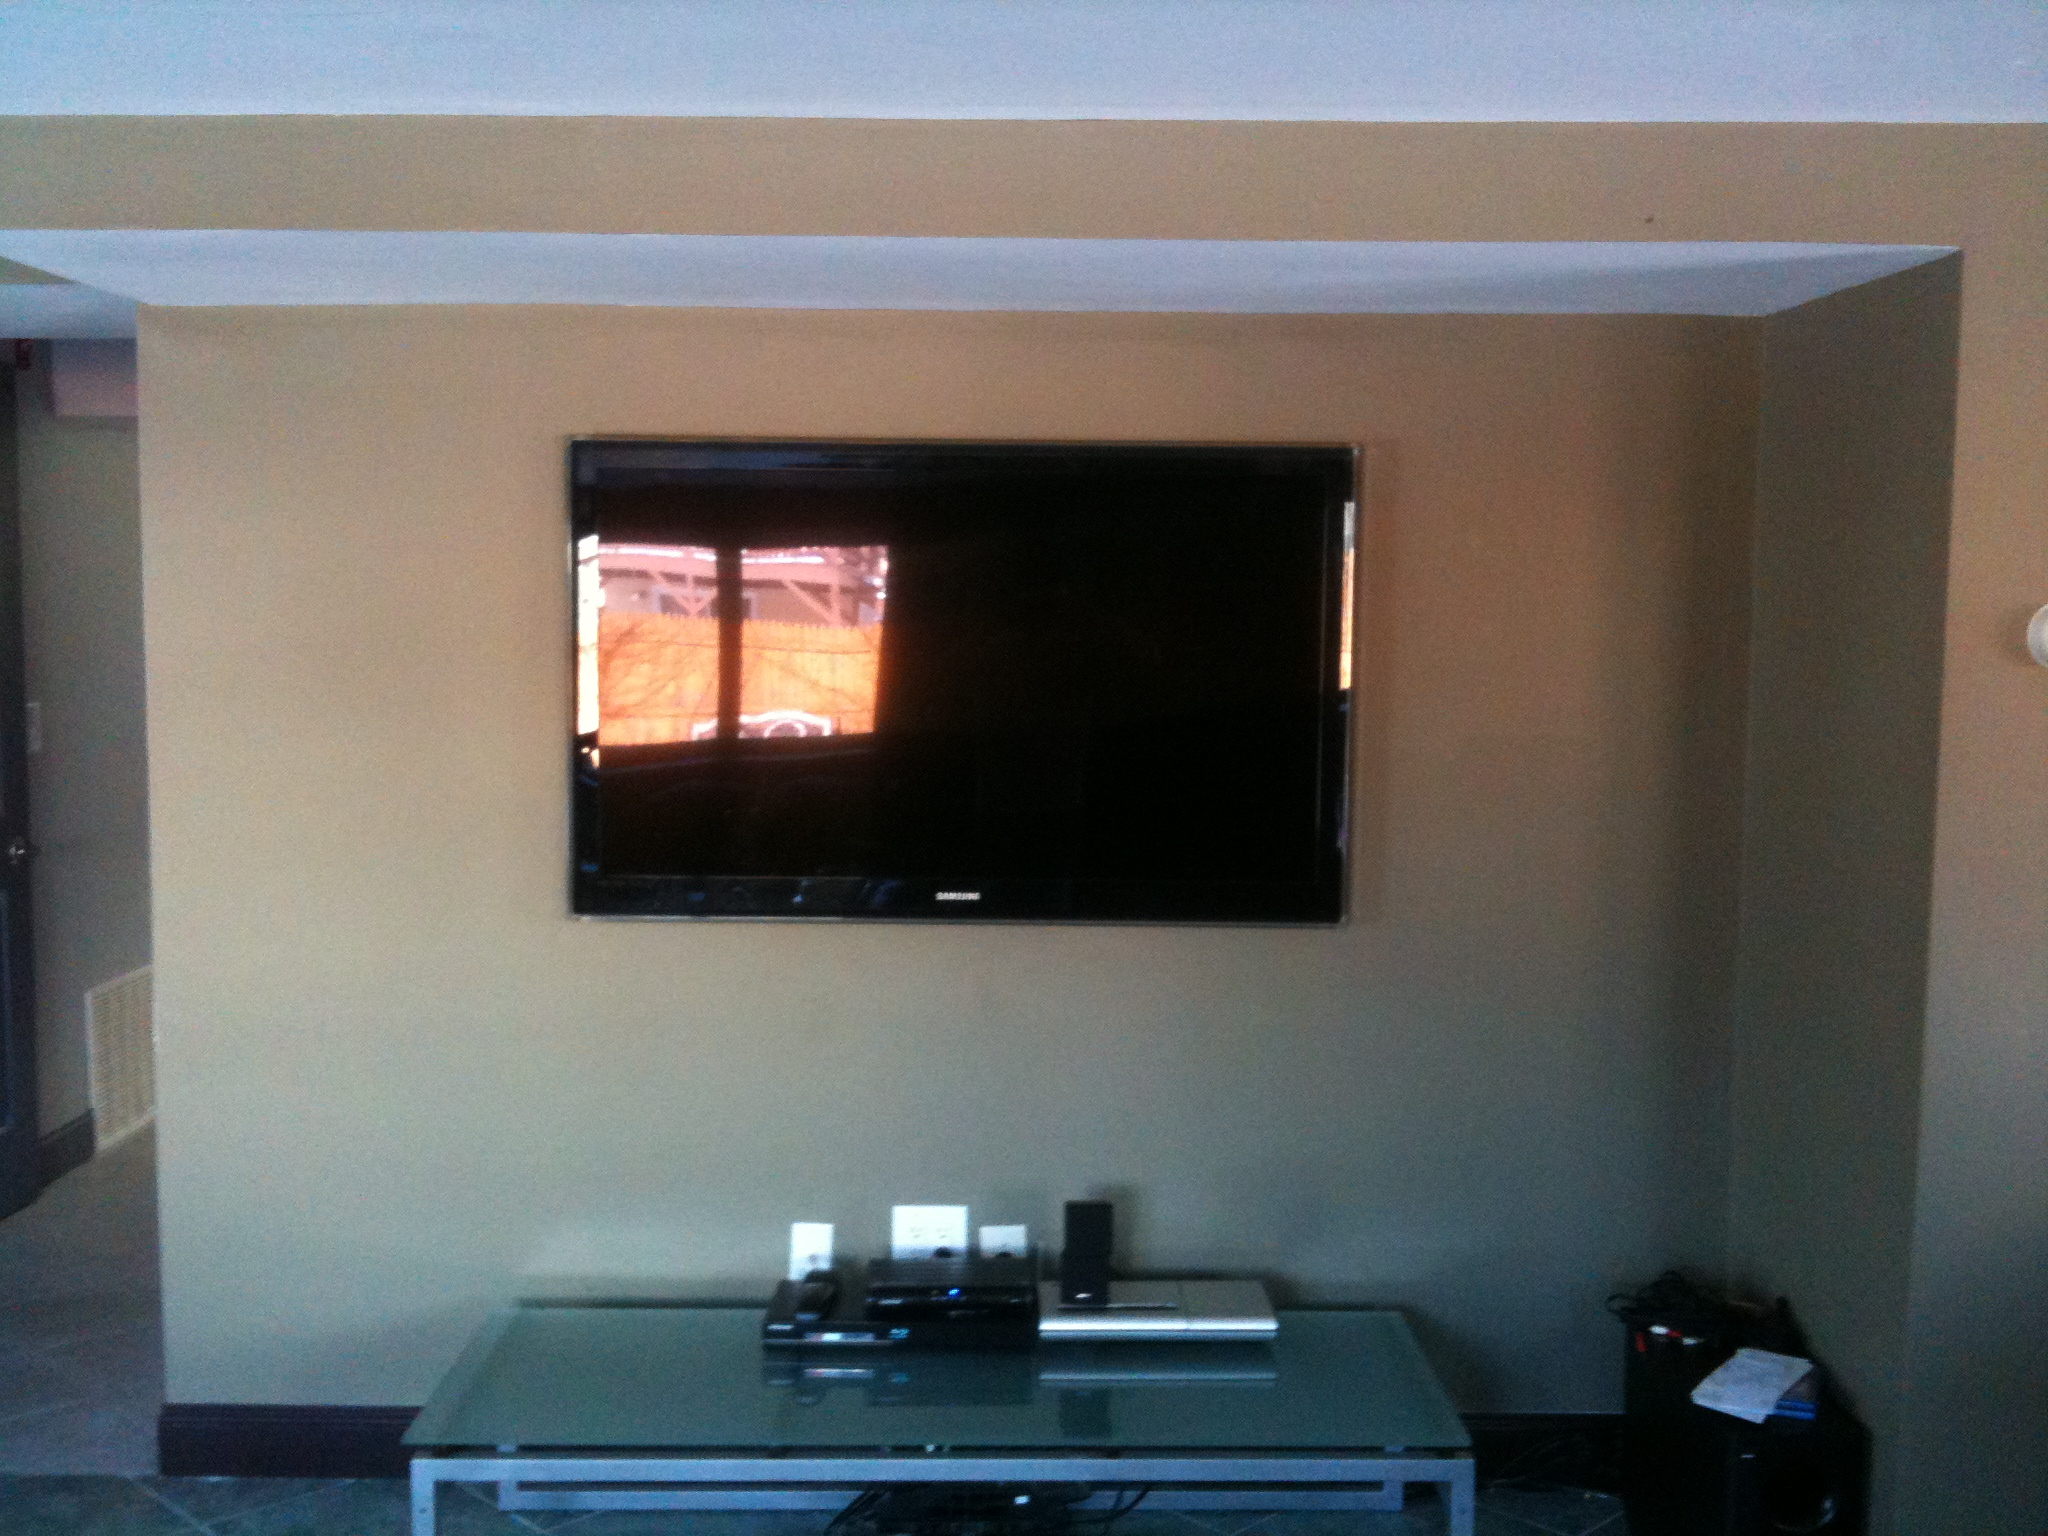 55inch LED TV wall mount install |Tirella Networks